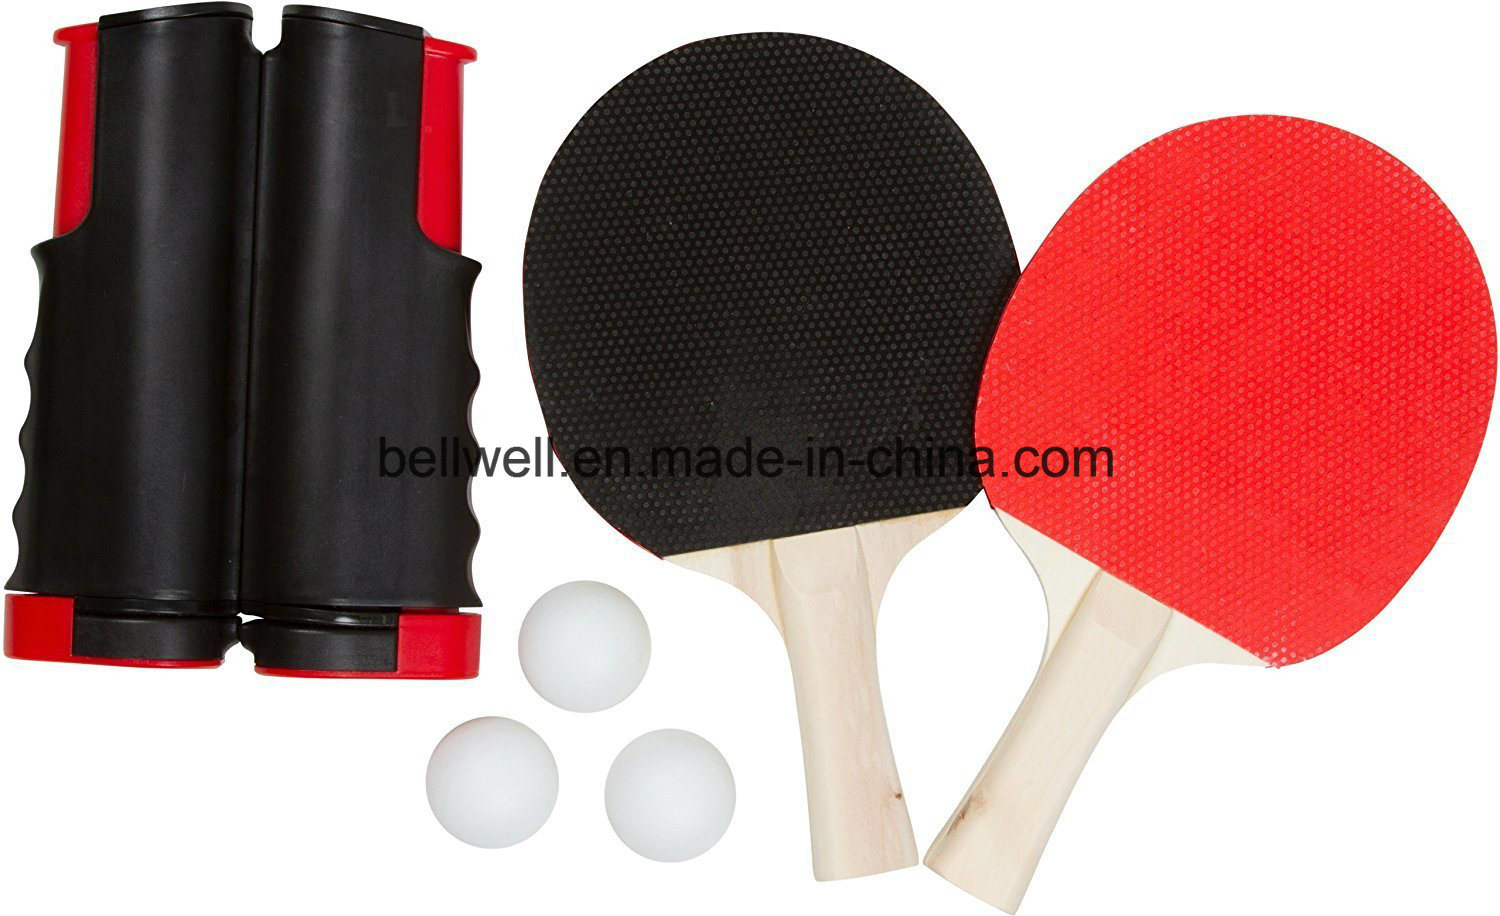 Portable Ping Pong Playset with Net, Paddles, Balls, and Carry Bag